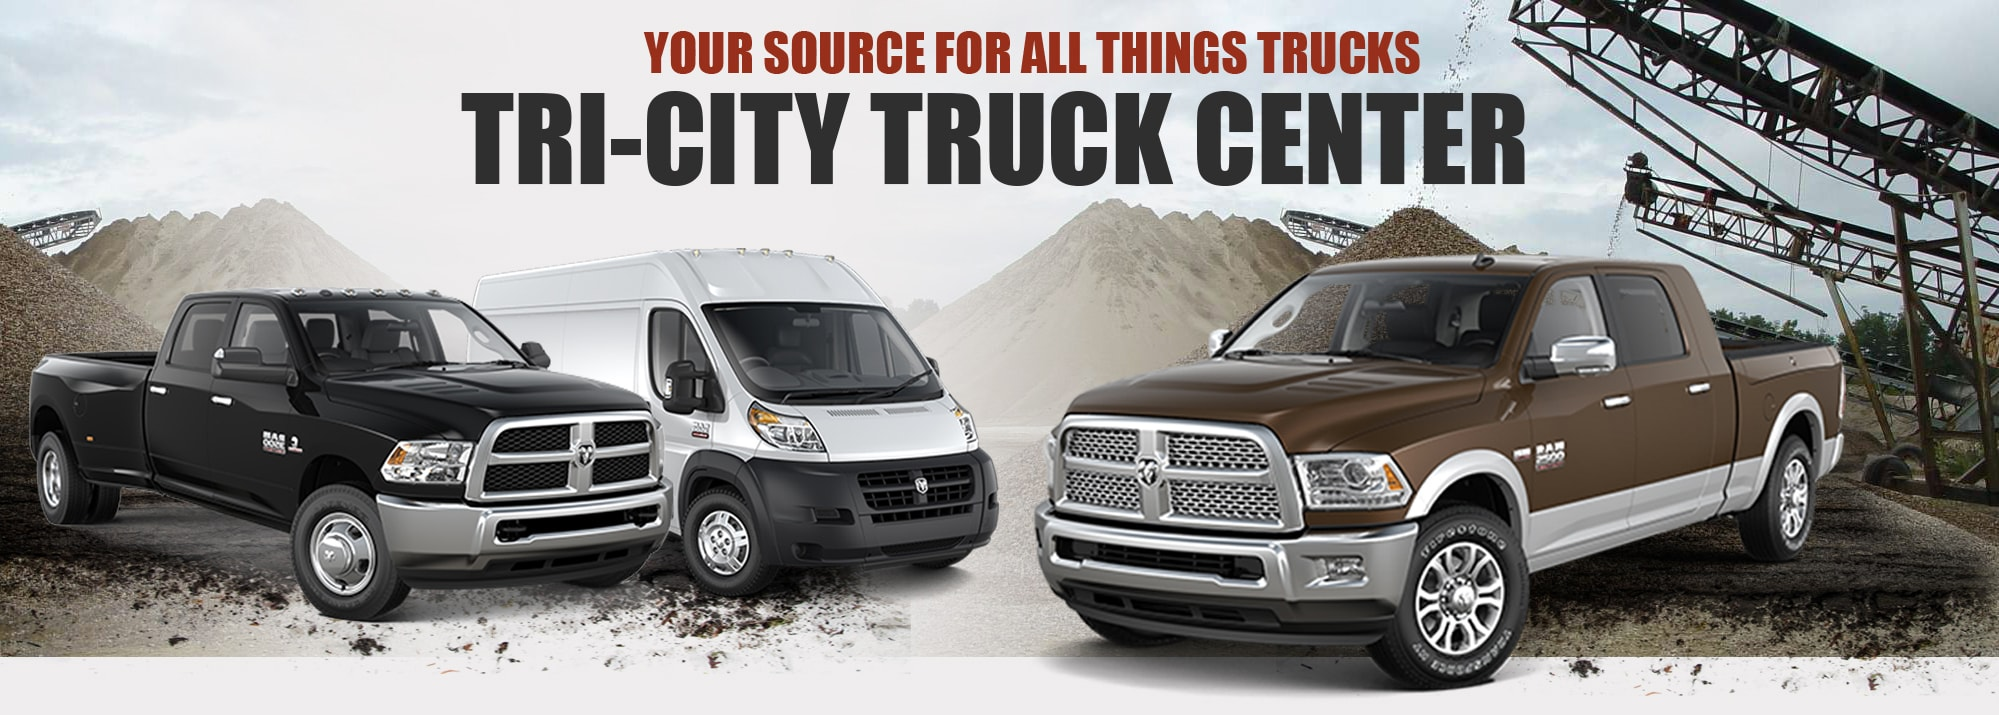 Tri-City Truck Center in Somersworth, NH